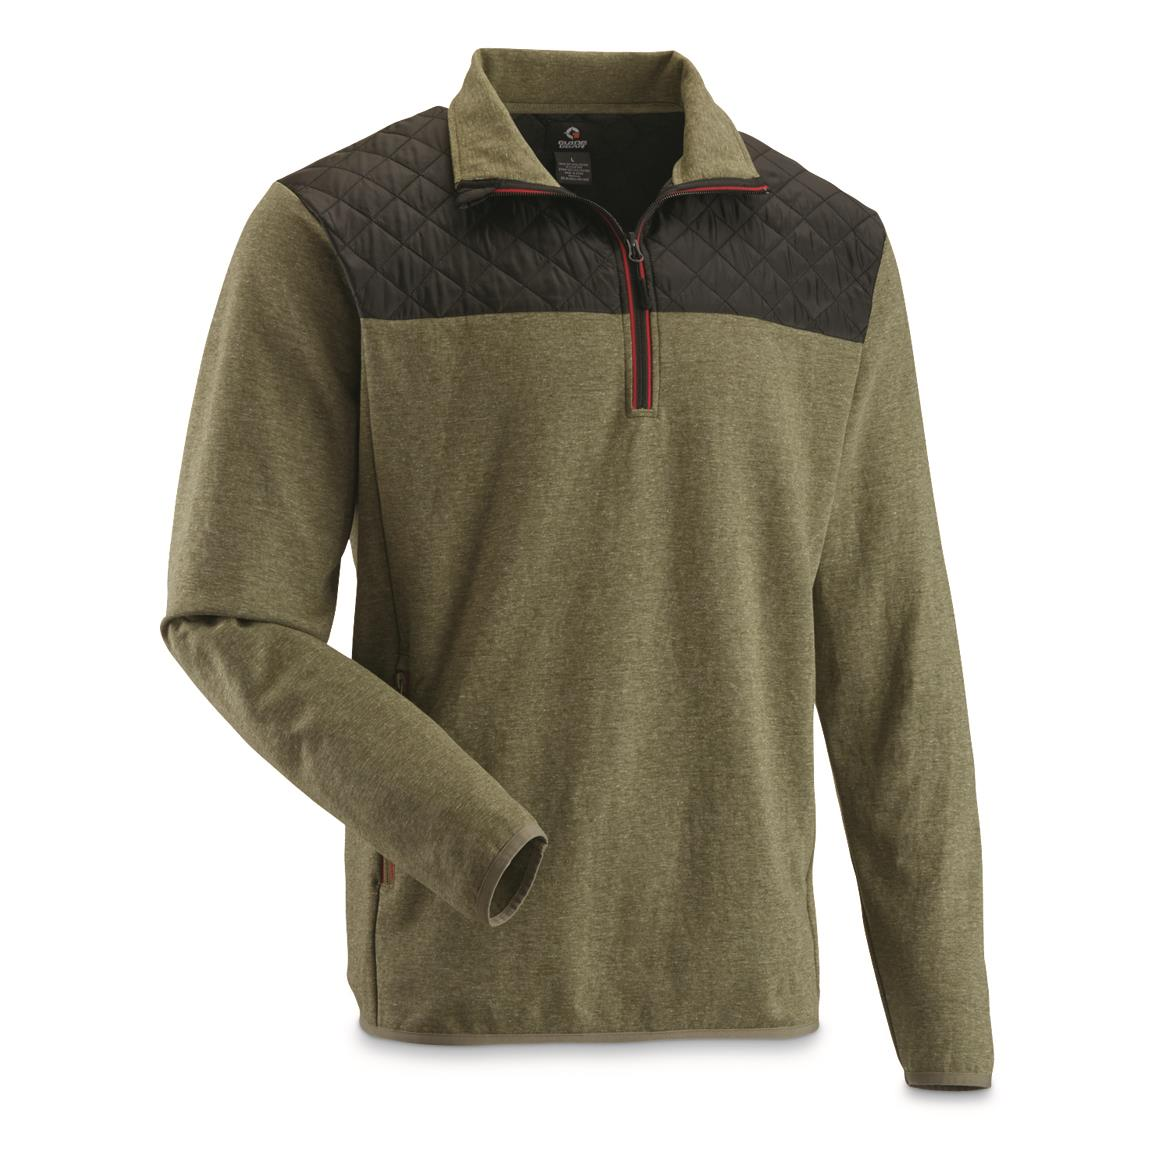 Guide Gear Men's Quilted Quarter-zip Pullover., Ivy Green